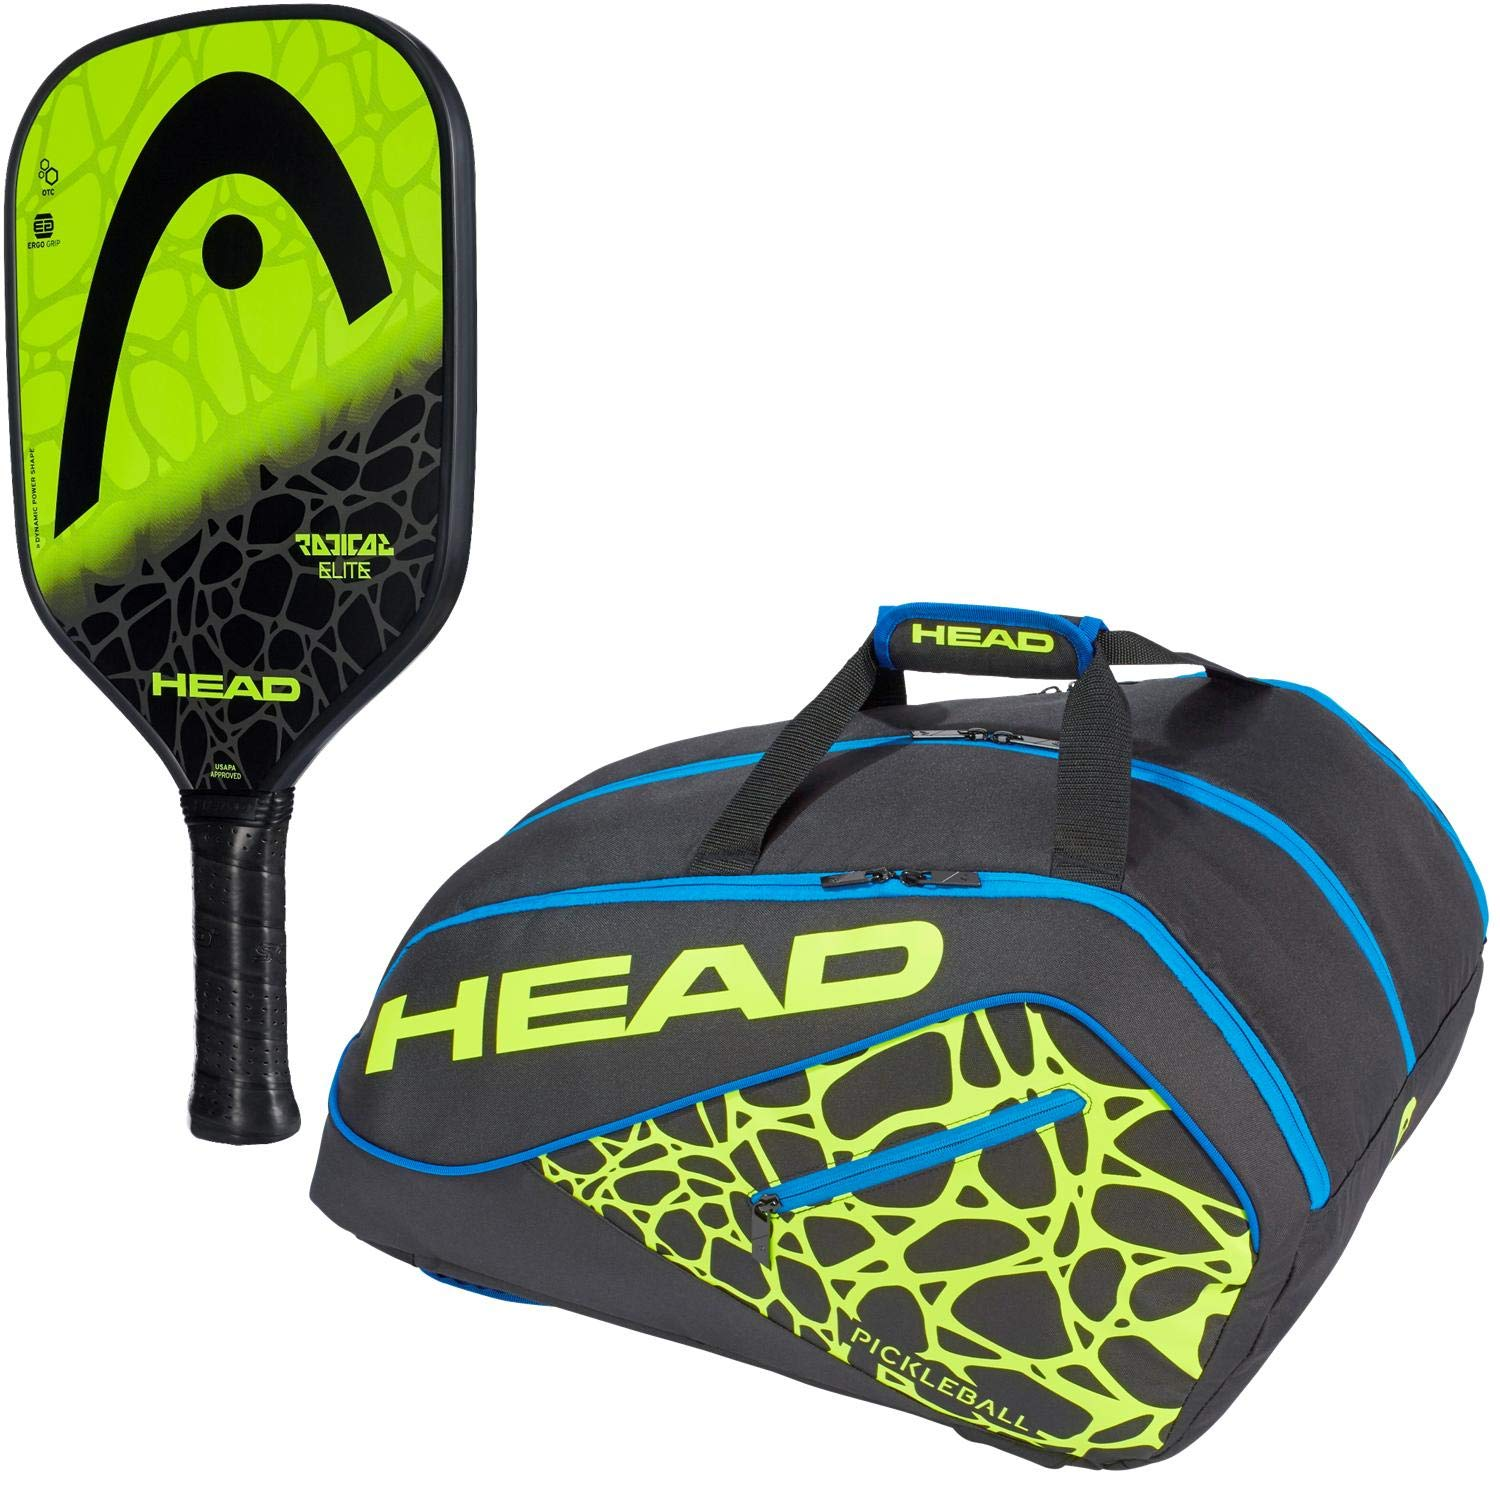 Amazon.com : HEAD Radical Elite Composite Black/Lime Pickleball Paddle Starter Kit or Set Bundled with a Black/Neon Yellow/Blue Tour Team Supercombi ...